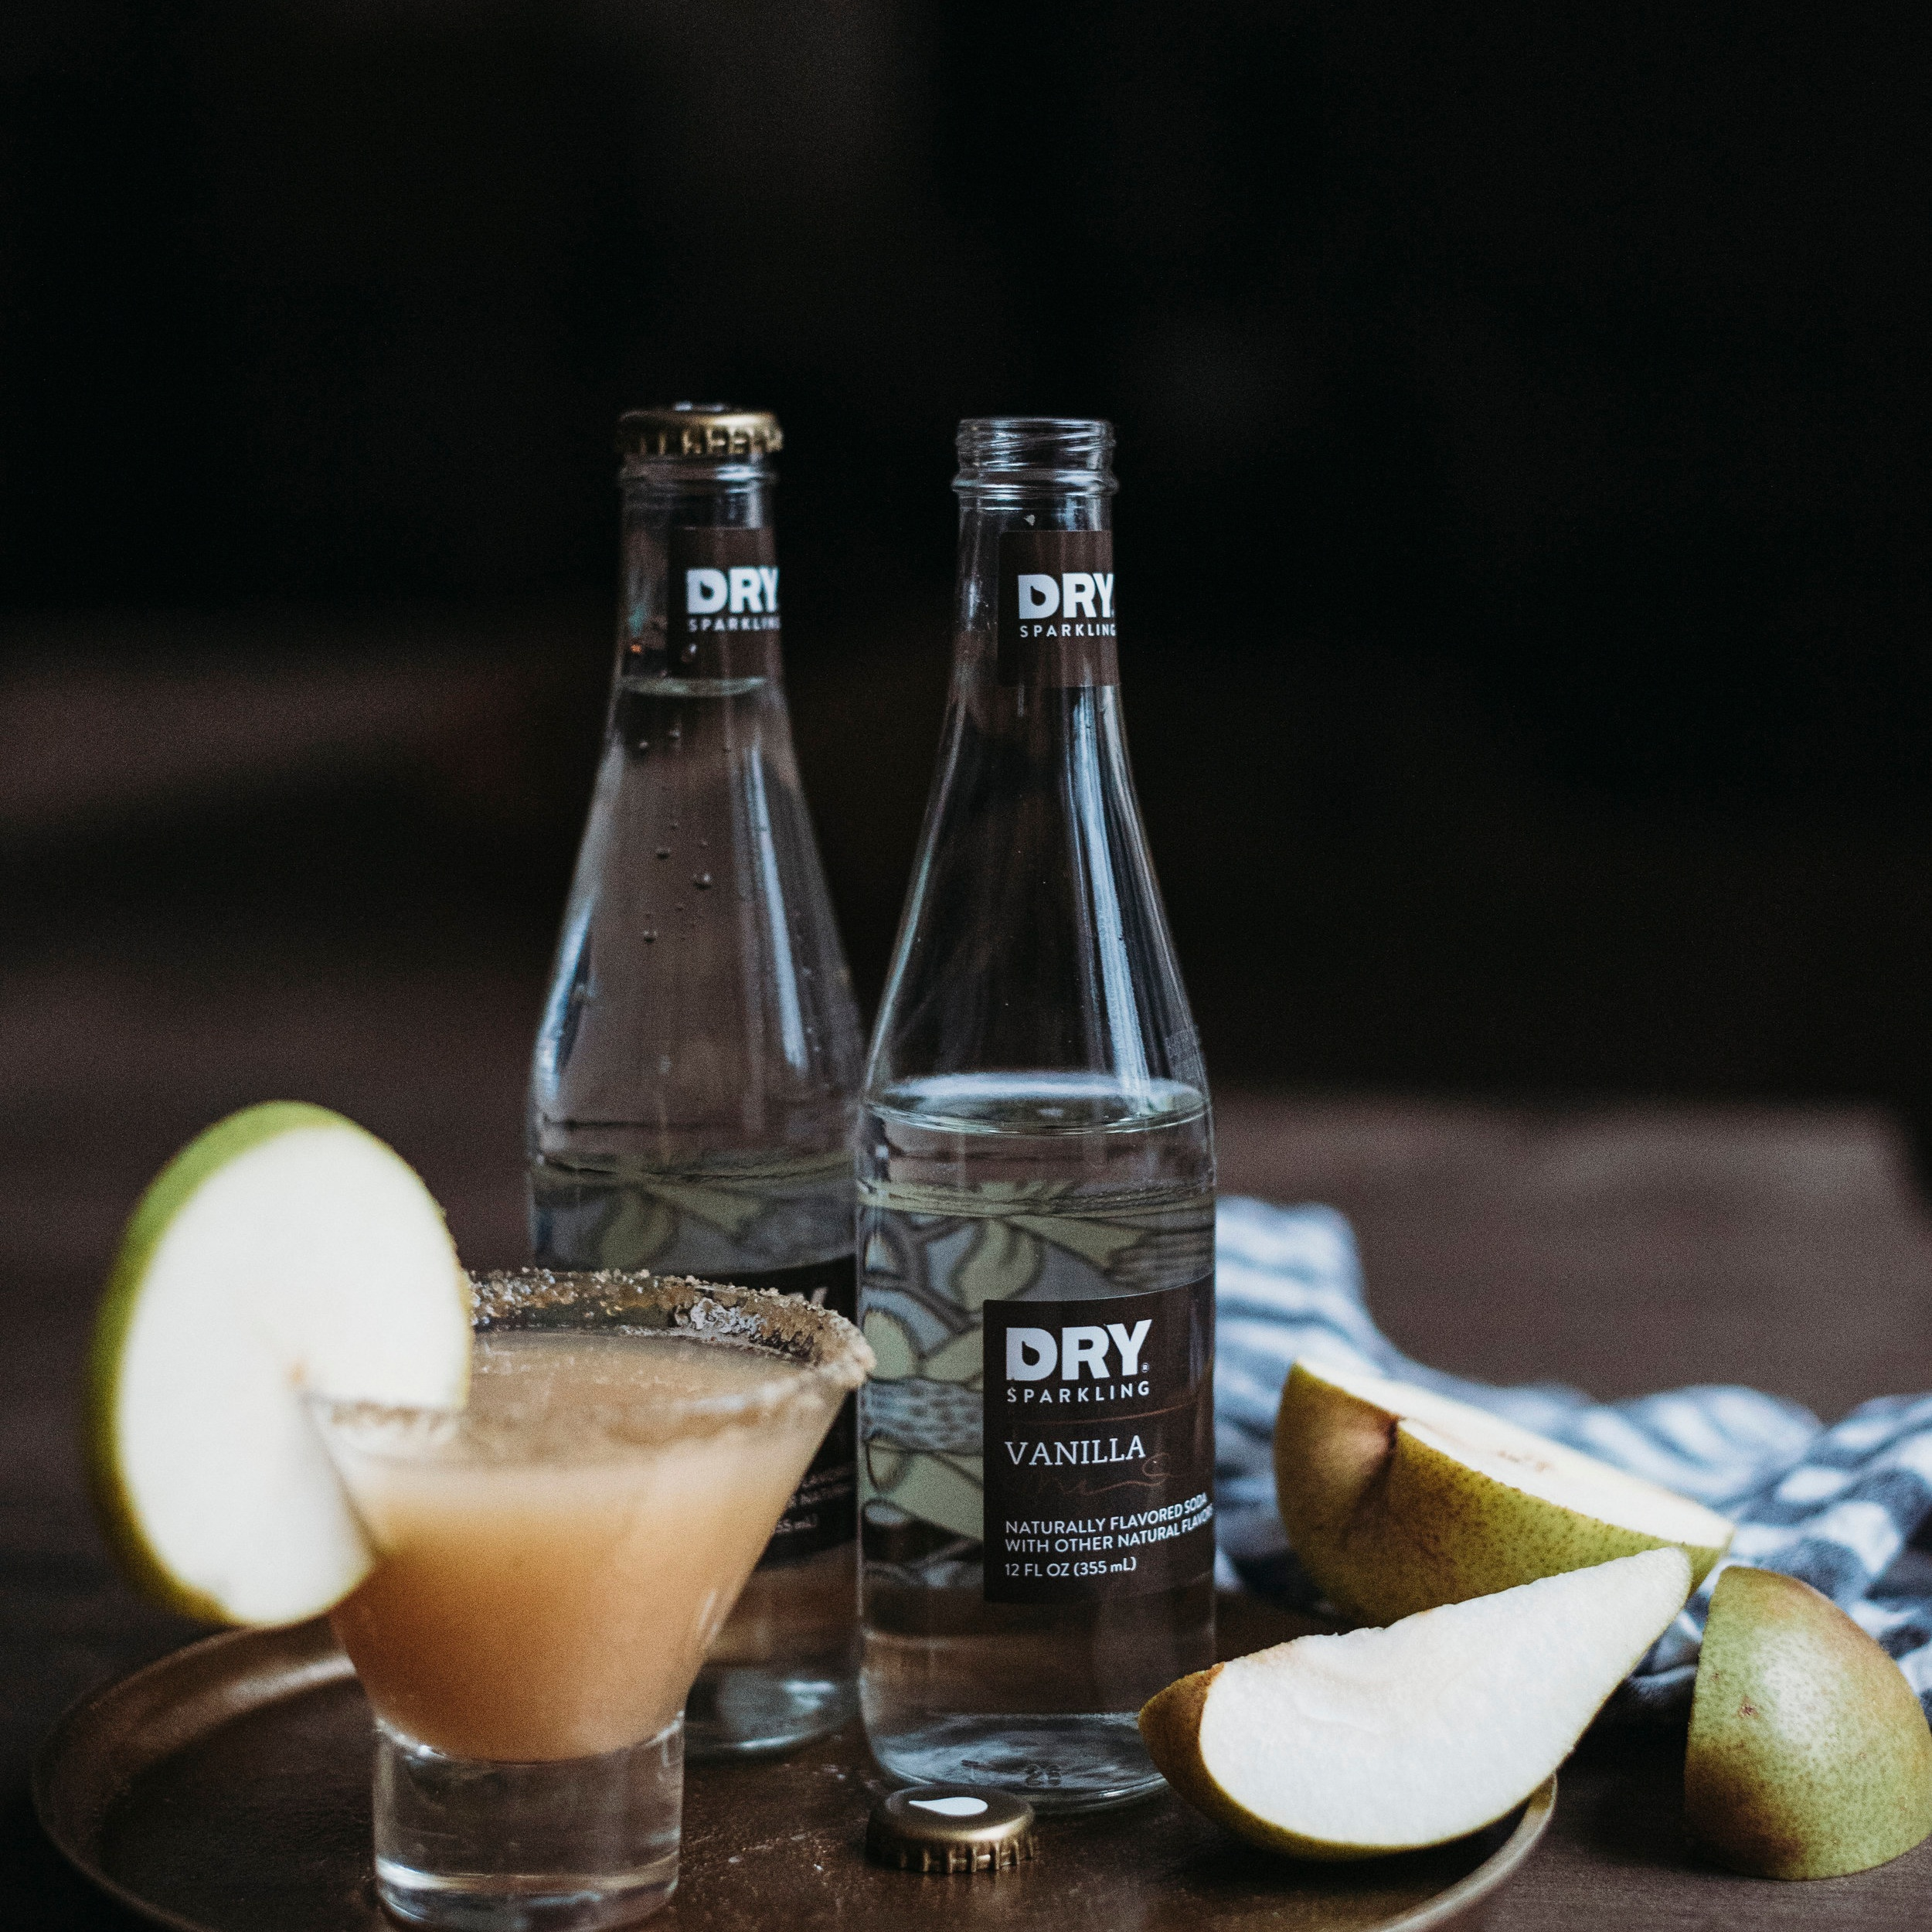 Featured Recipe: Ginger Pear Perfection - Perfect for the winter season, the Ginger Pear Perfection surprises with a pear base and a touch of cardamom and vanilla.